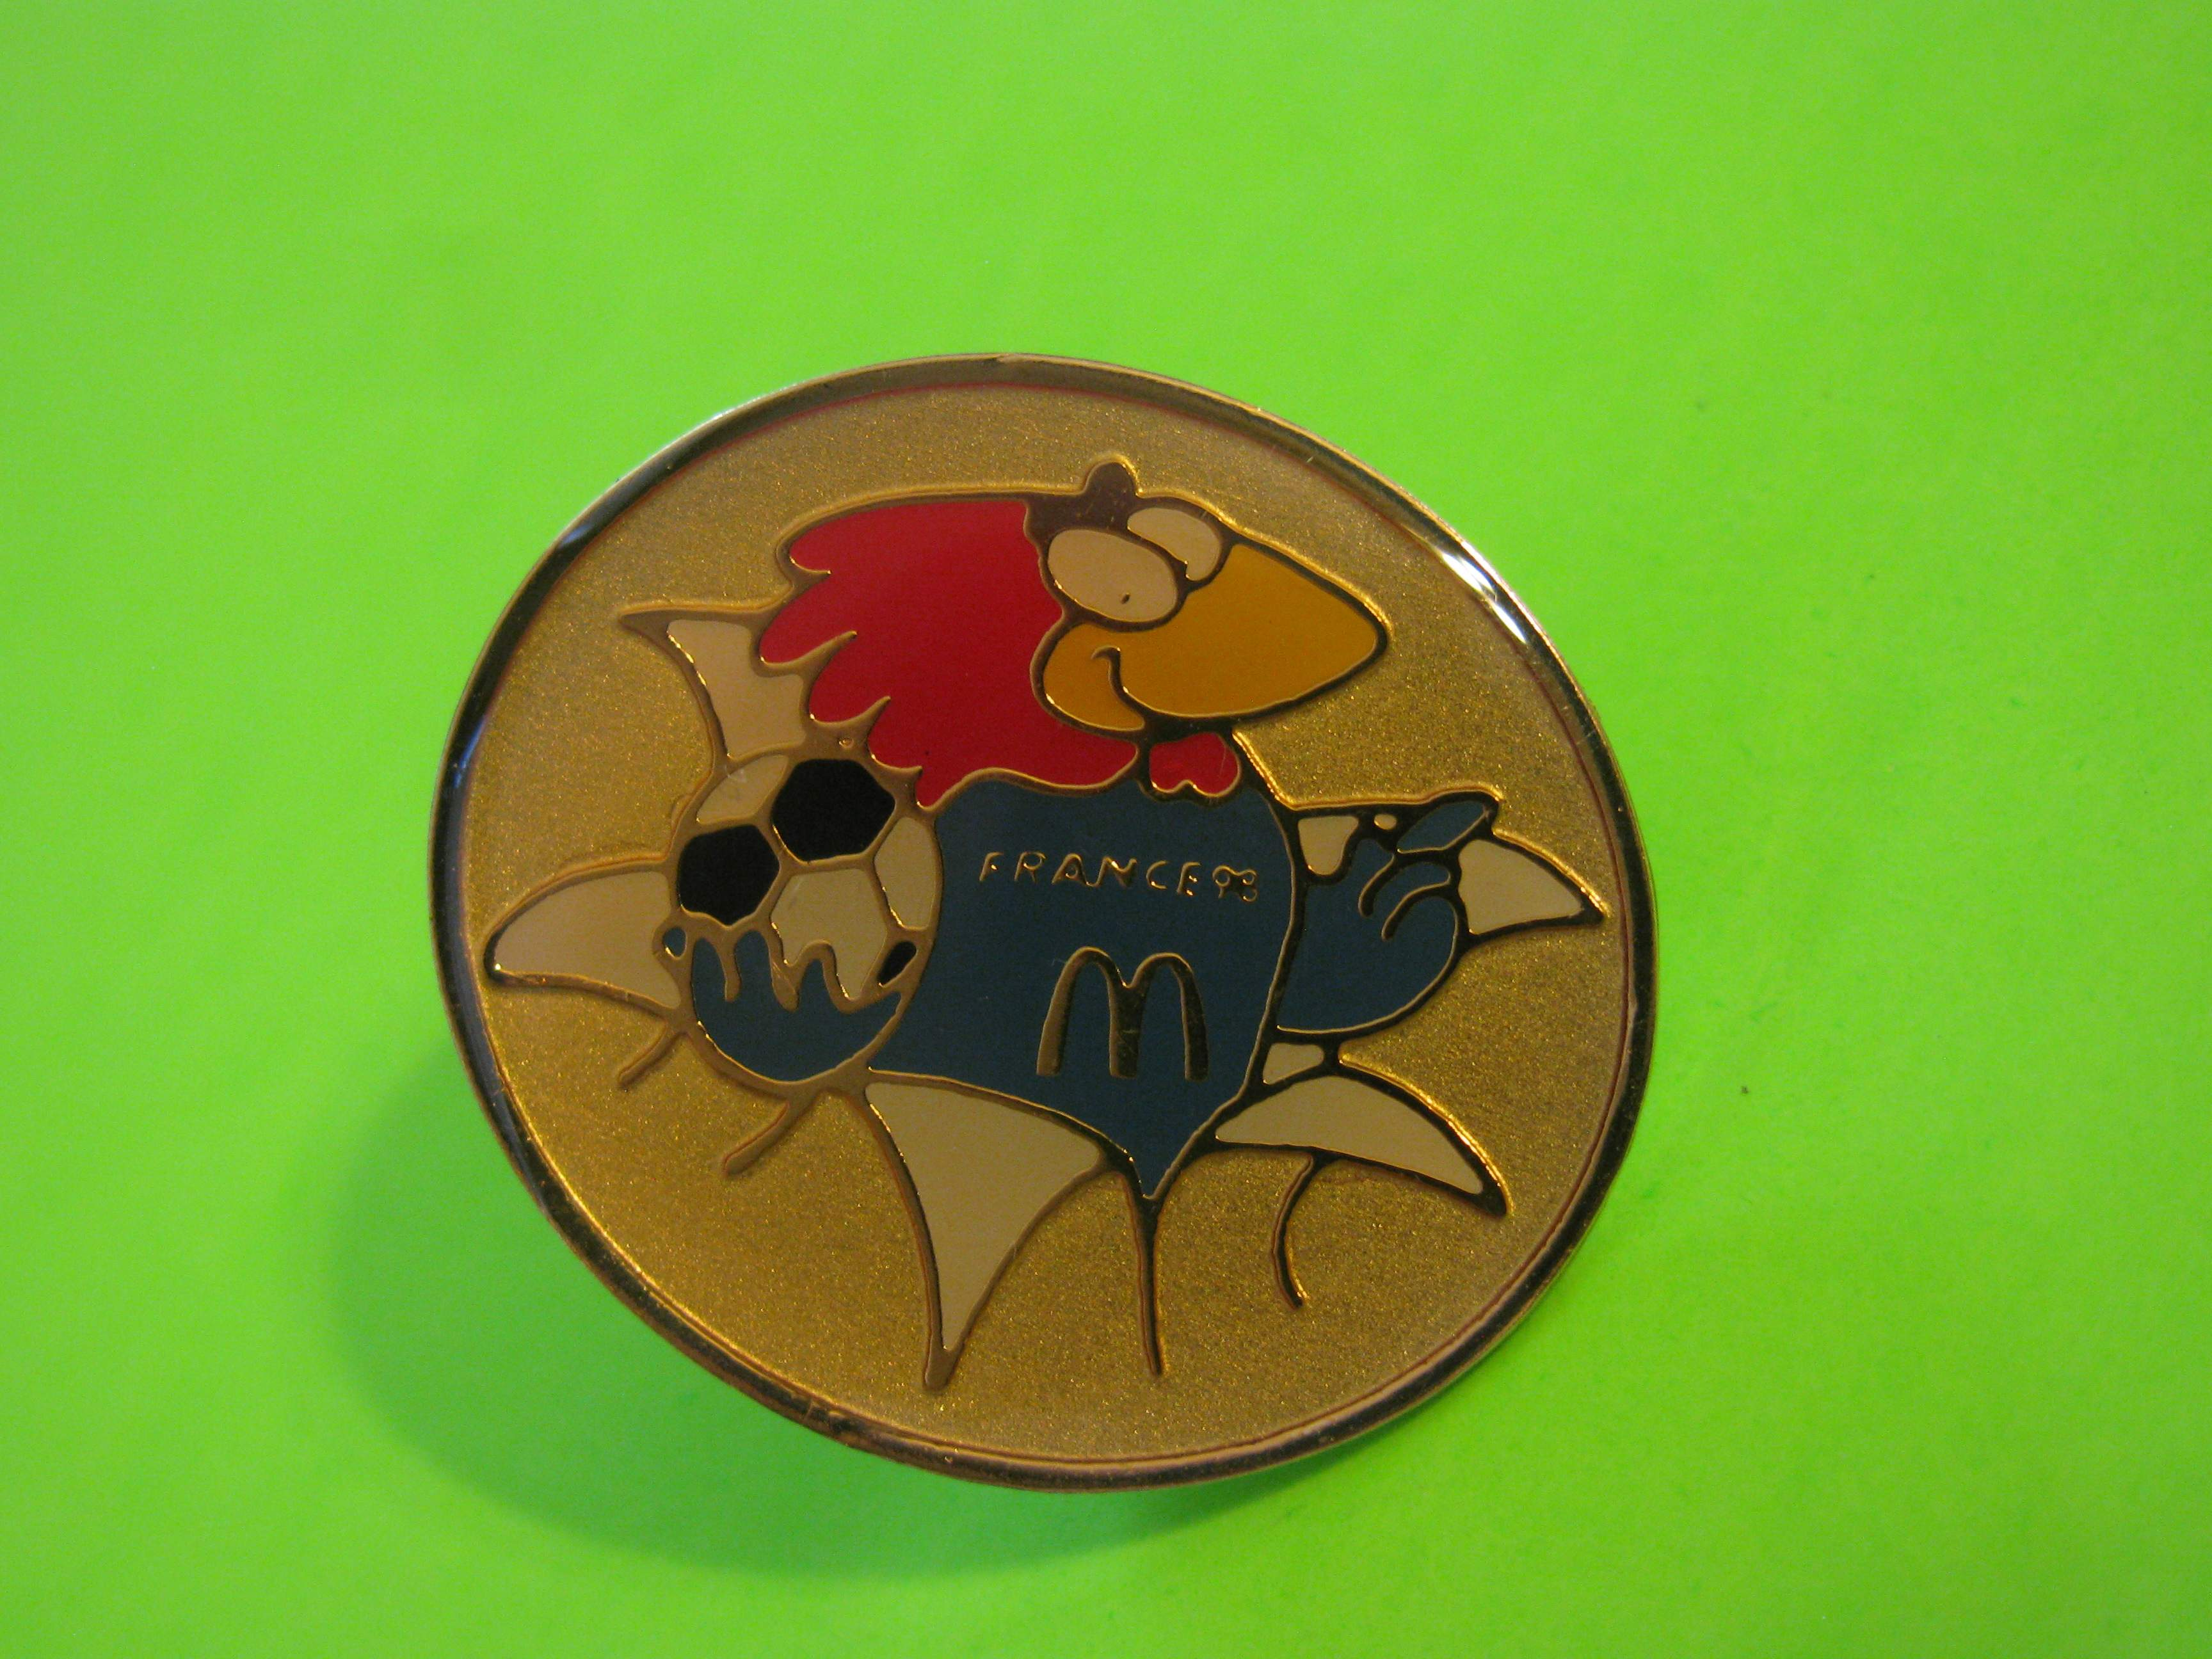 Vintage 1998 France Soccer McDonald's Promo Pin with Butterfly Clutch